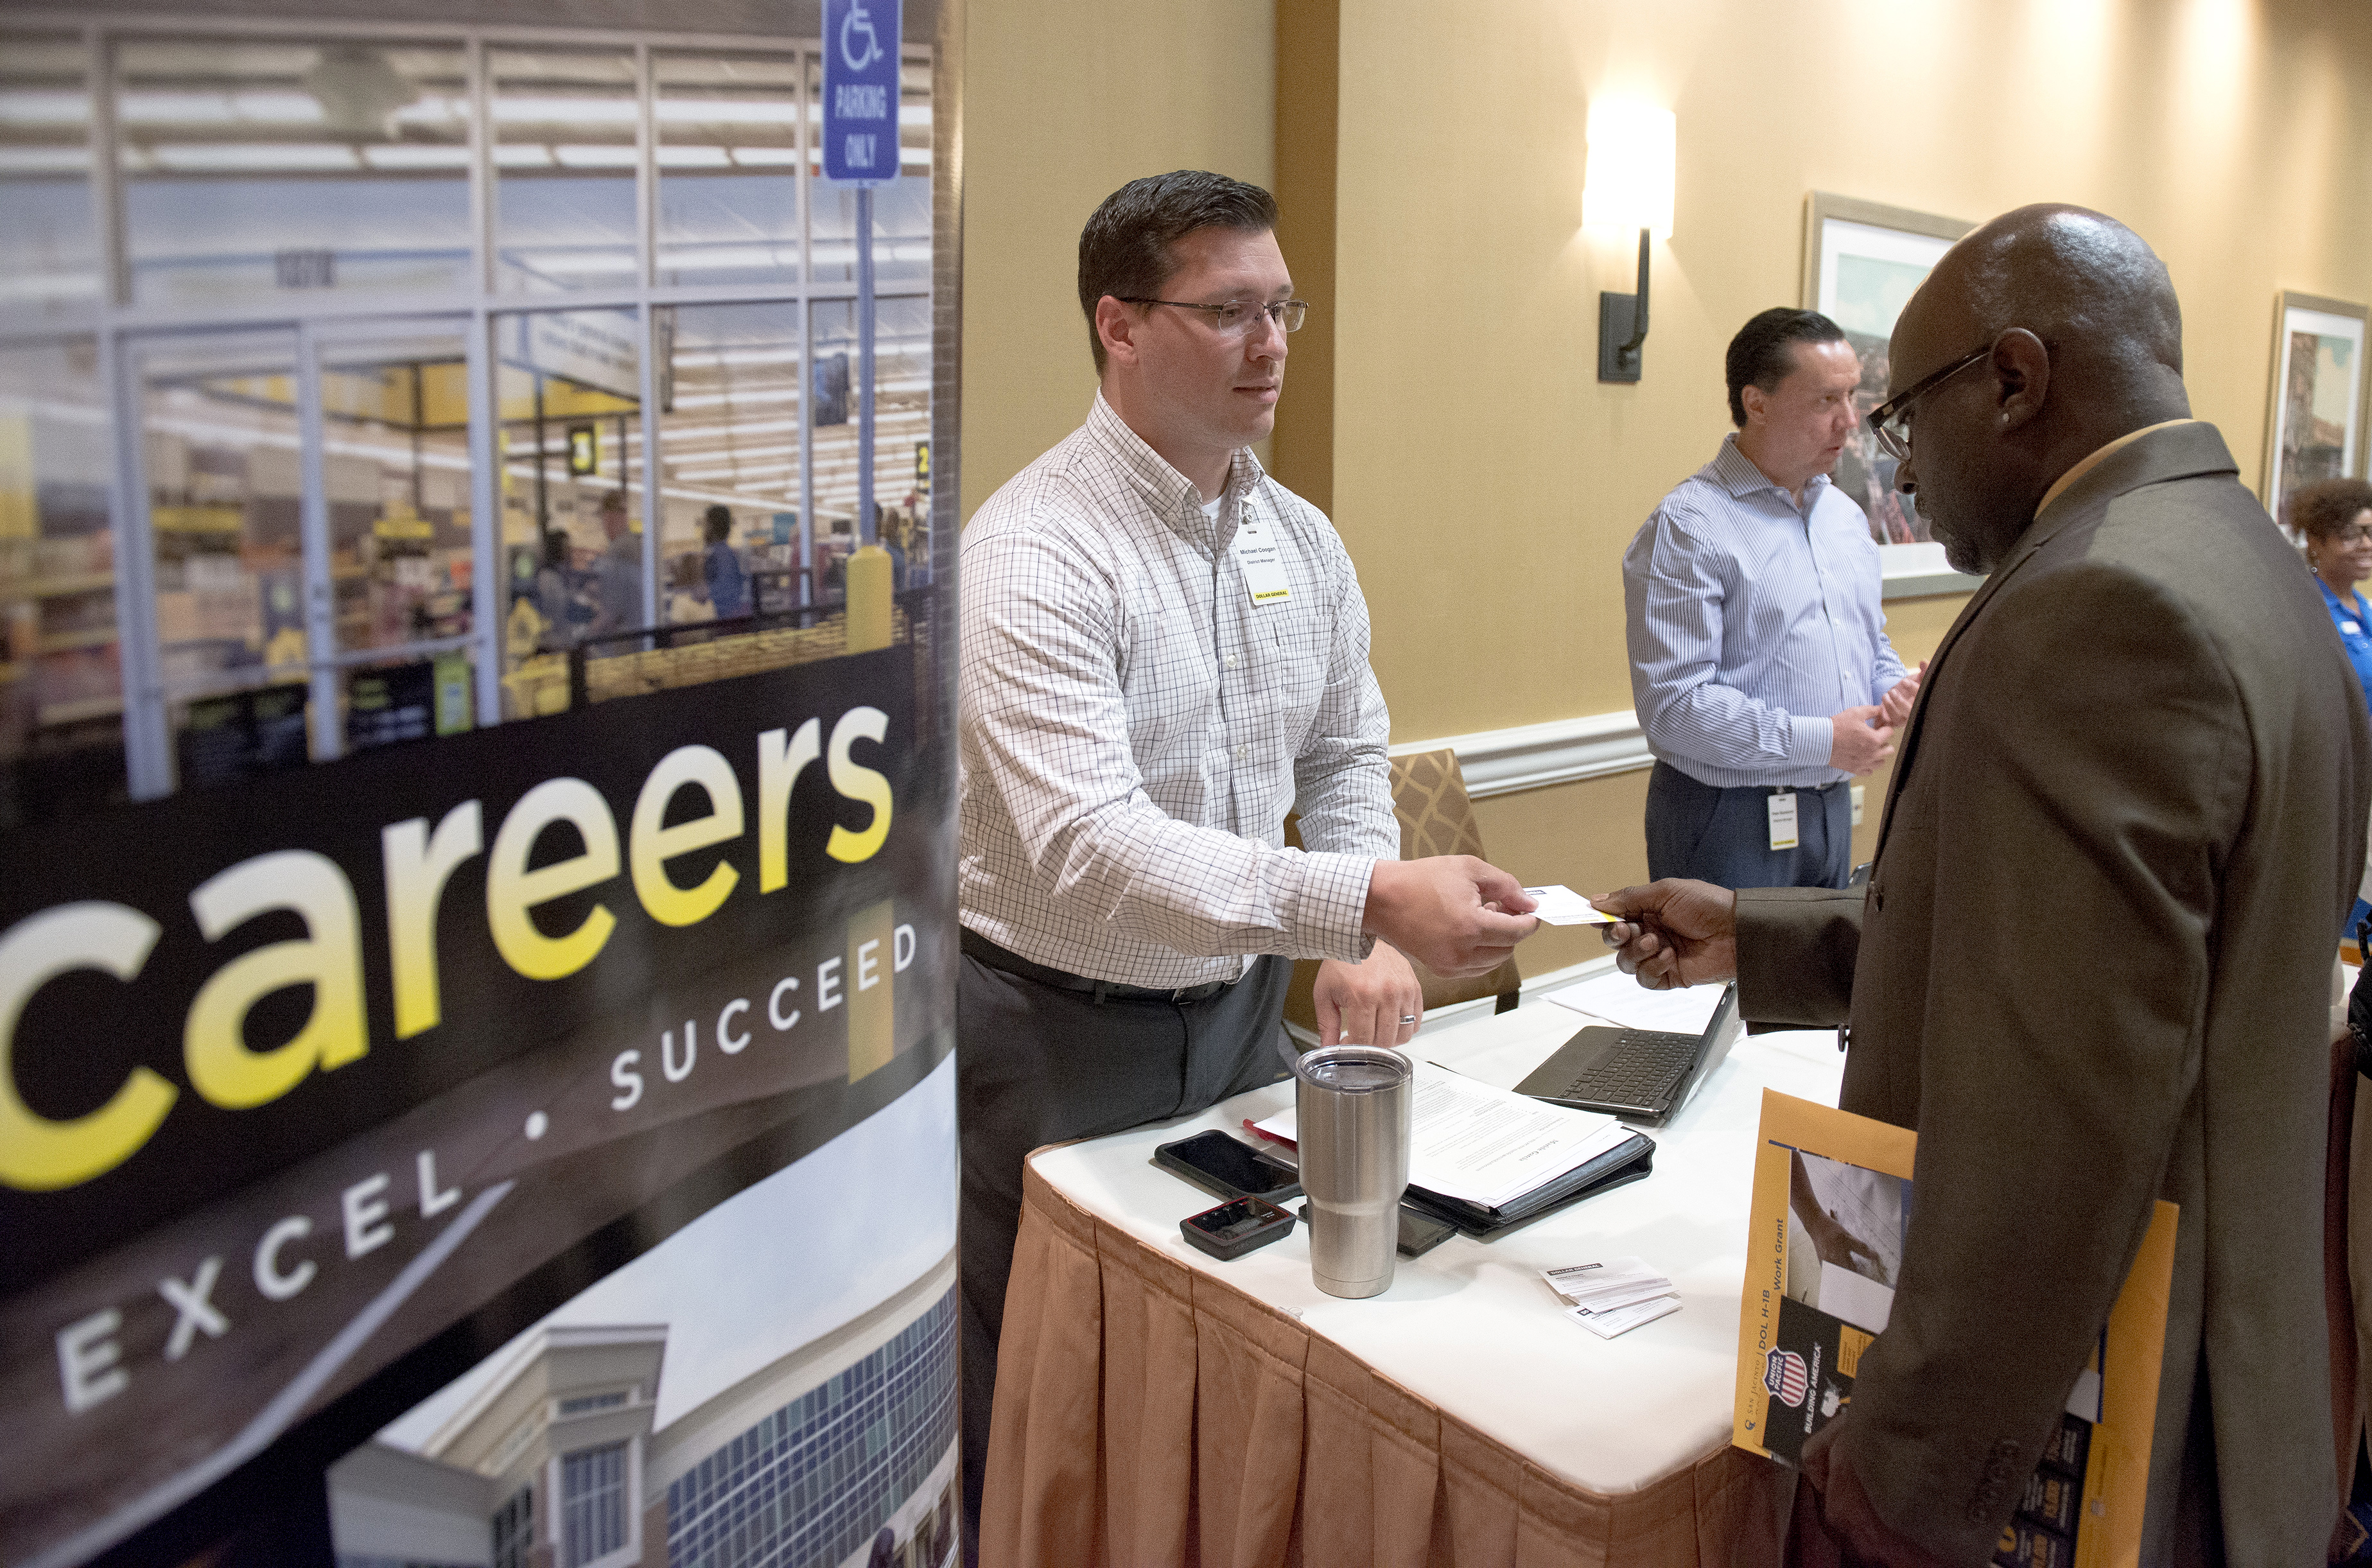 A Dollar General Corp. representative speaks to a job seeker during the Best Hire Career Fair in Houston, Texas, U.S., on Thursday, July 7, 2016.